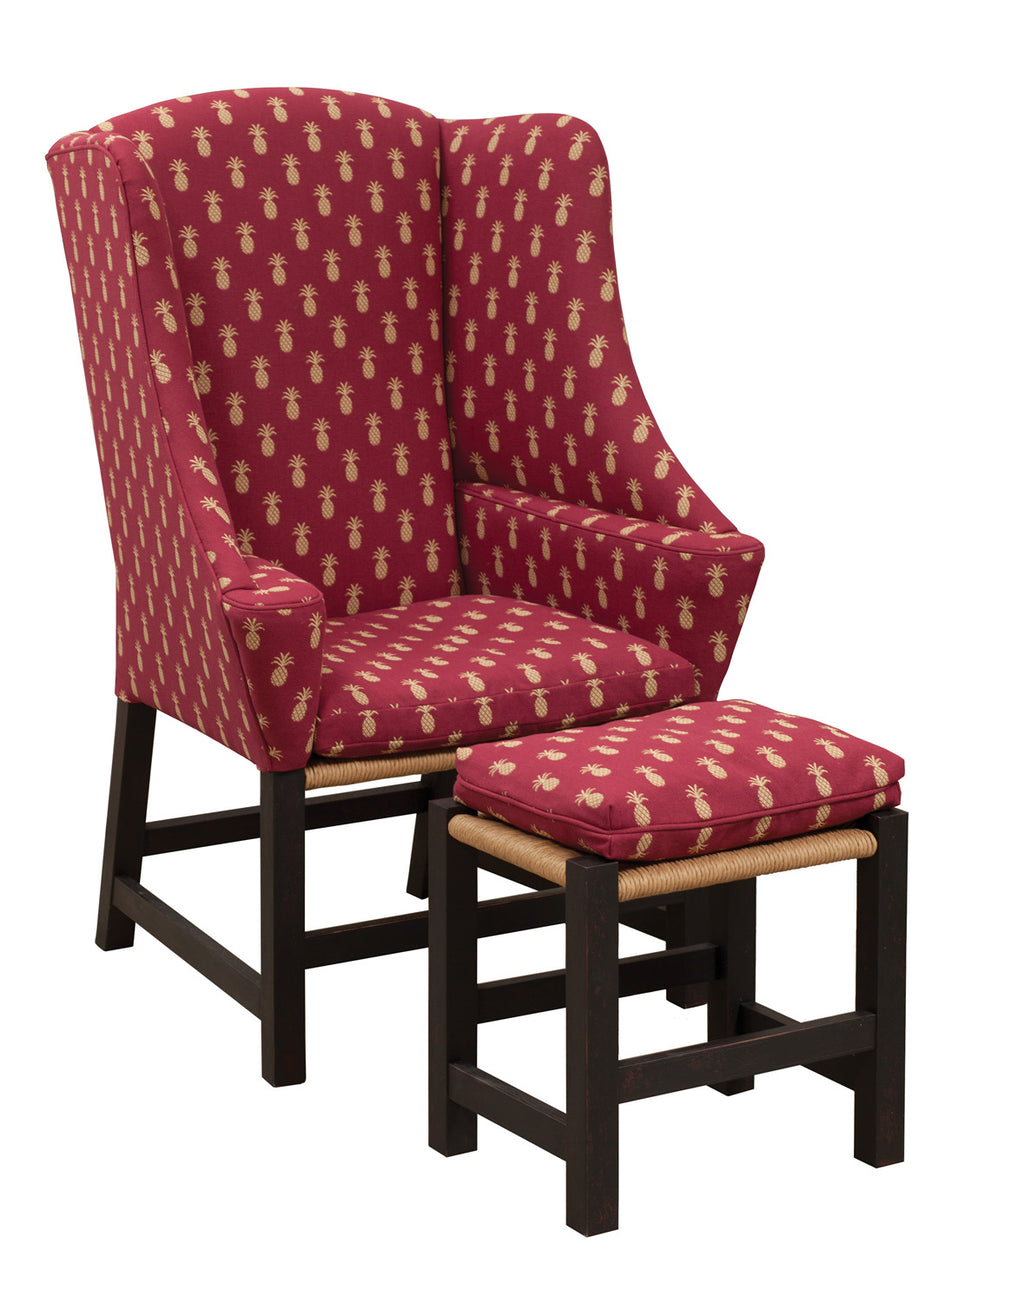 Center Inn Gent Chair and Matching Footstool